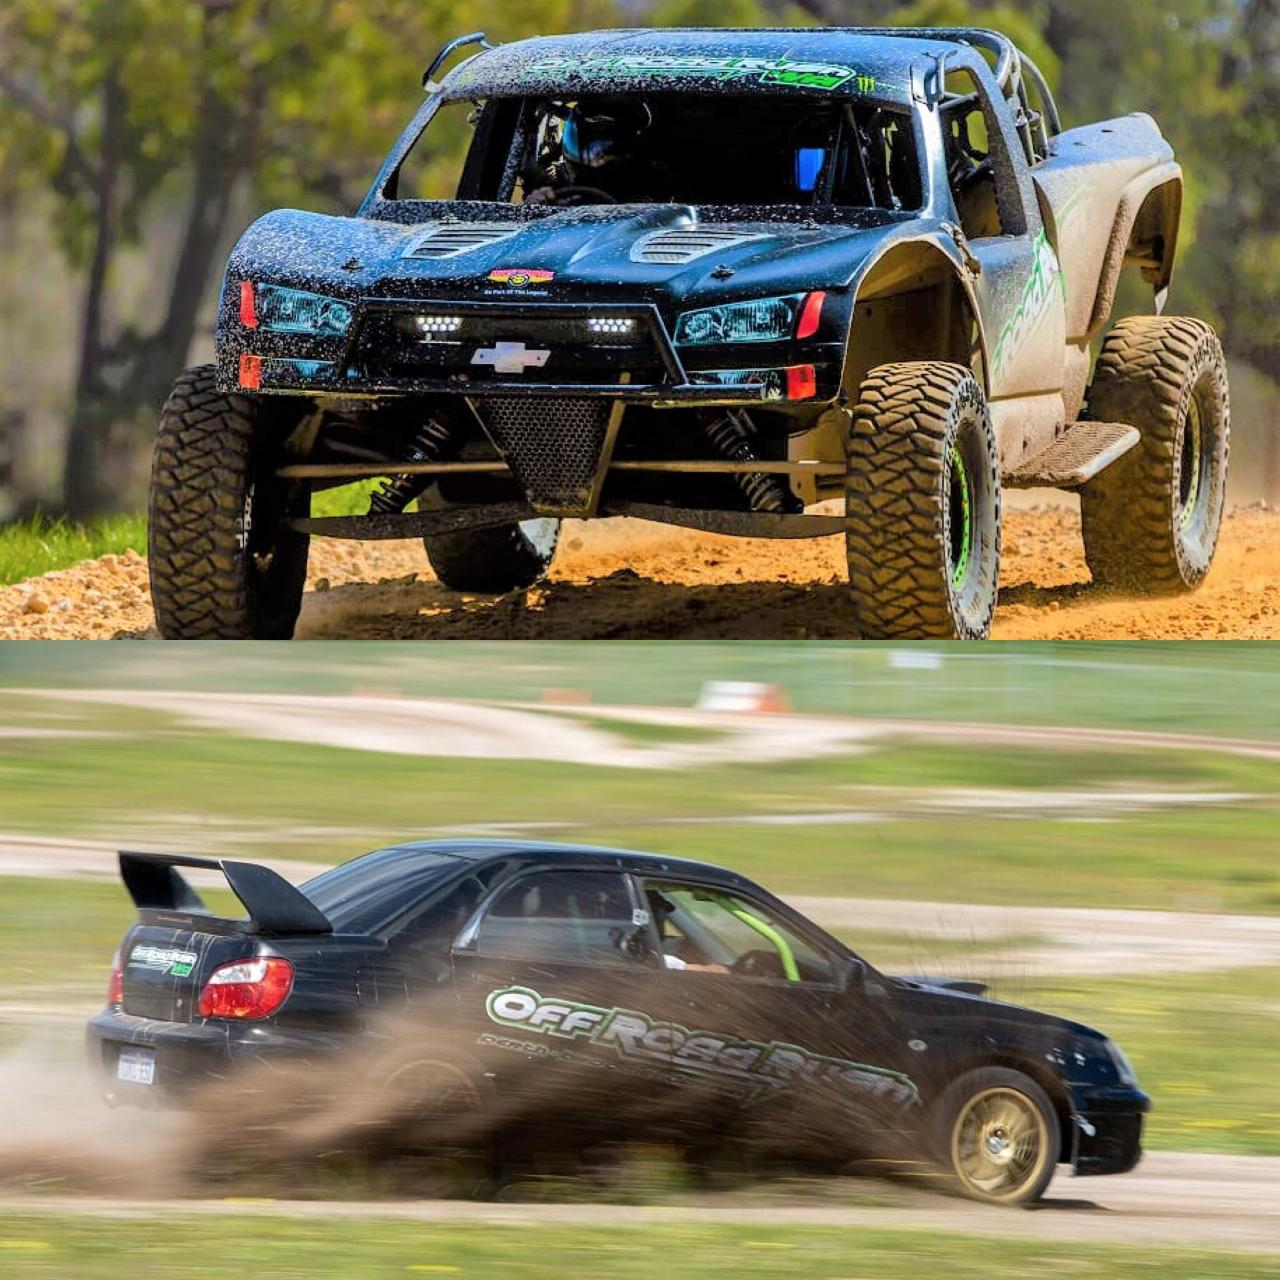 PERTH - COMBO 1 -- WRX RALLY 8 DRIVE LAPS + V8 TROPHY TRUCK 8 DRIVE LAPS + 2 HOT LAPS